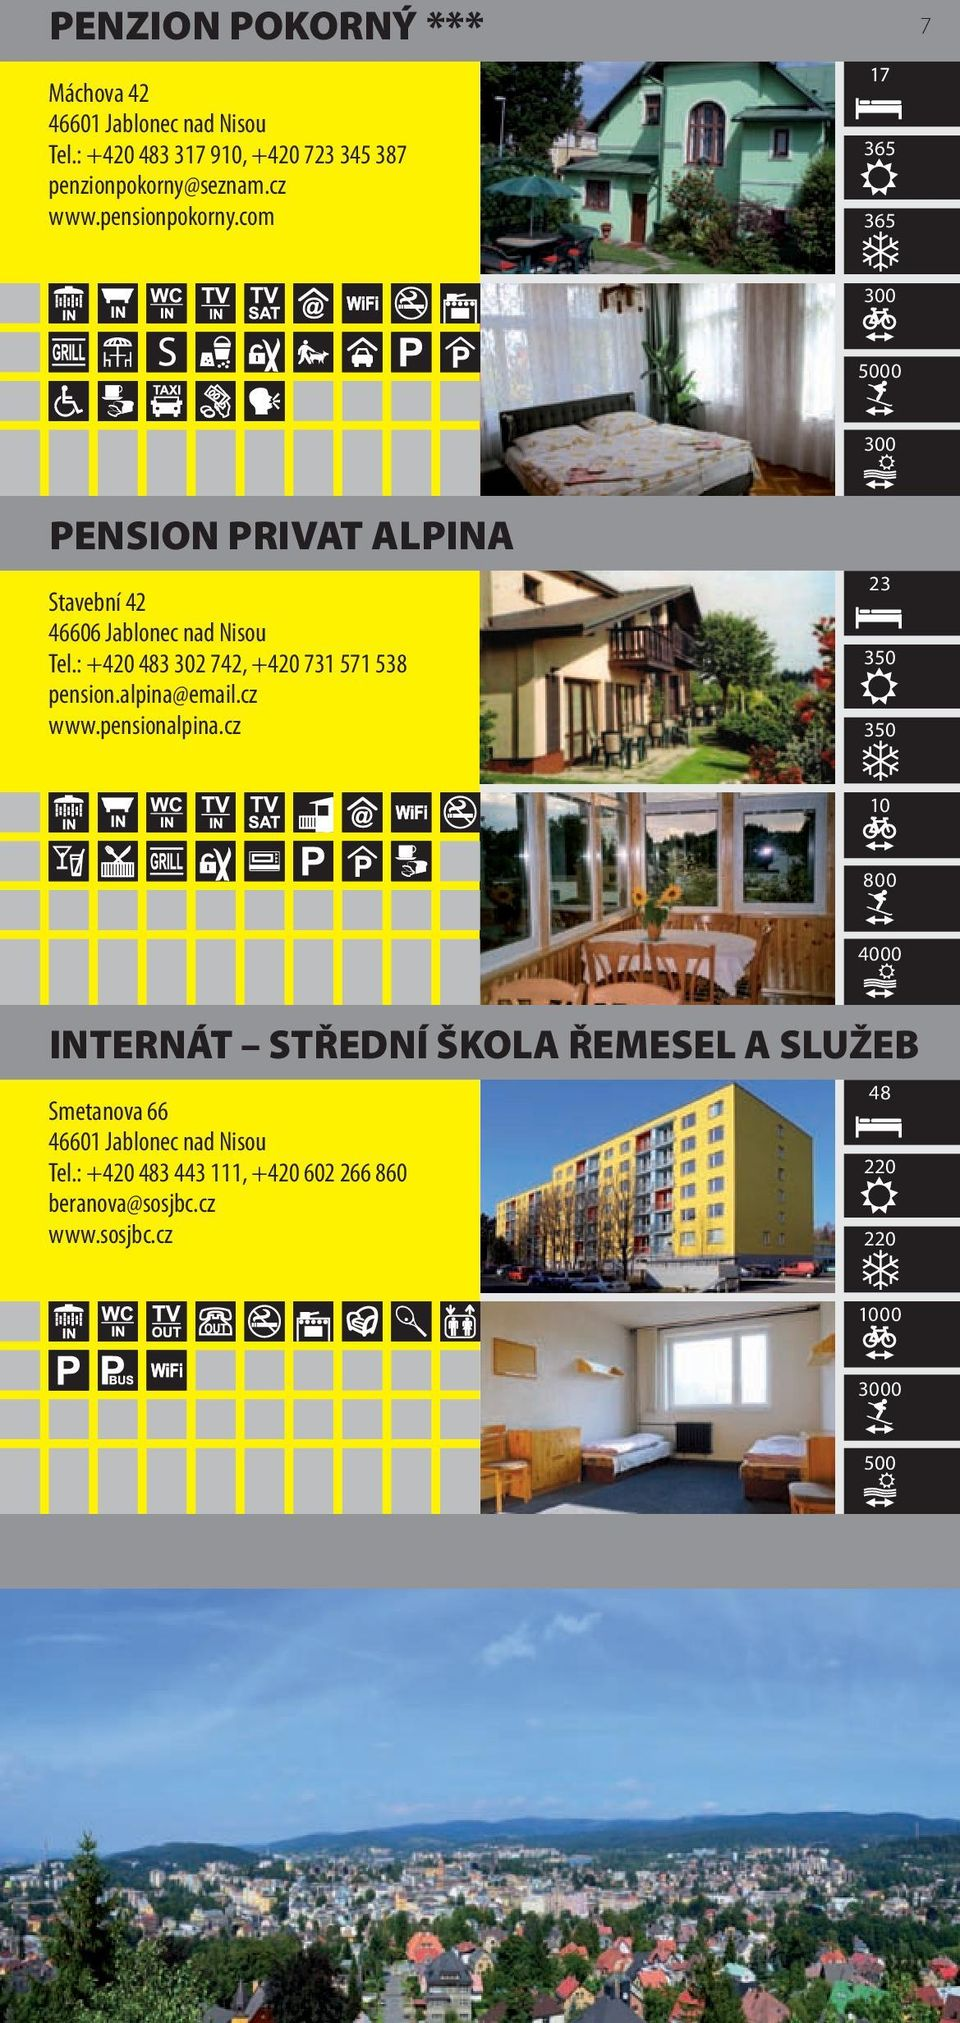 : +420 483 302 742, +420 731 571 538 pension.alpina@email.cz www.pensionalpina.